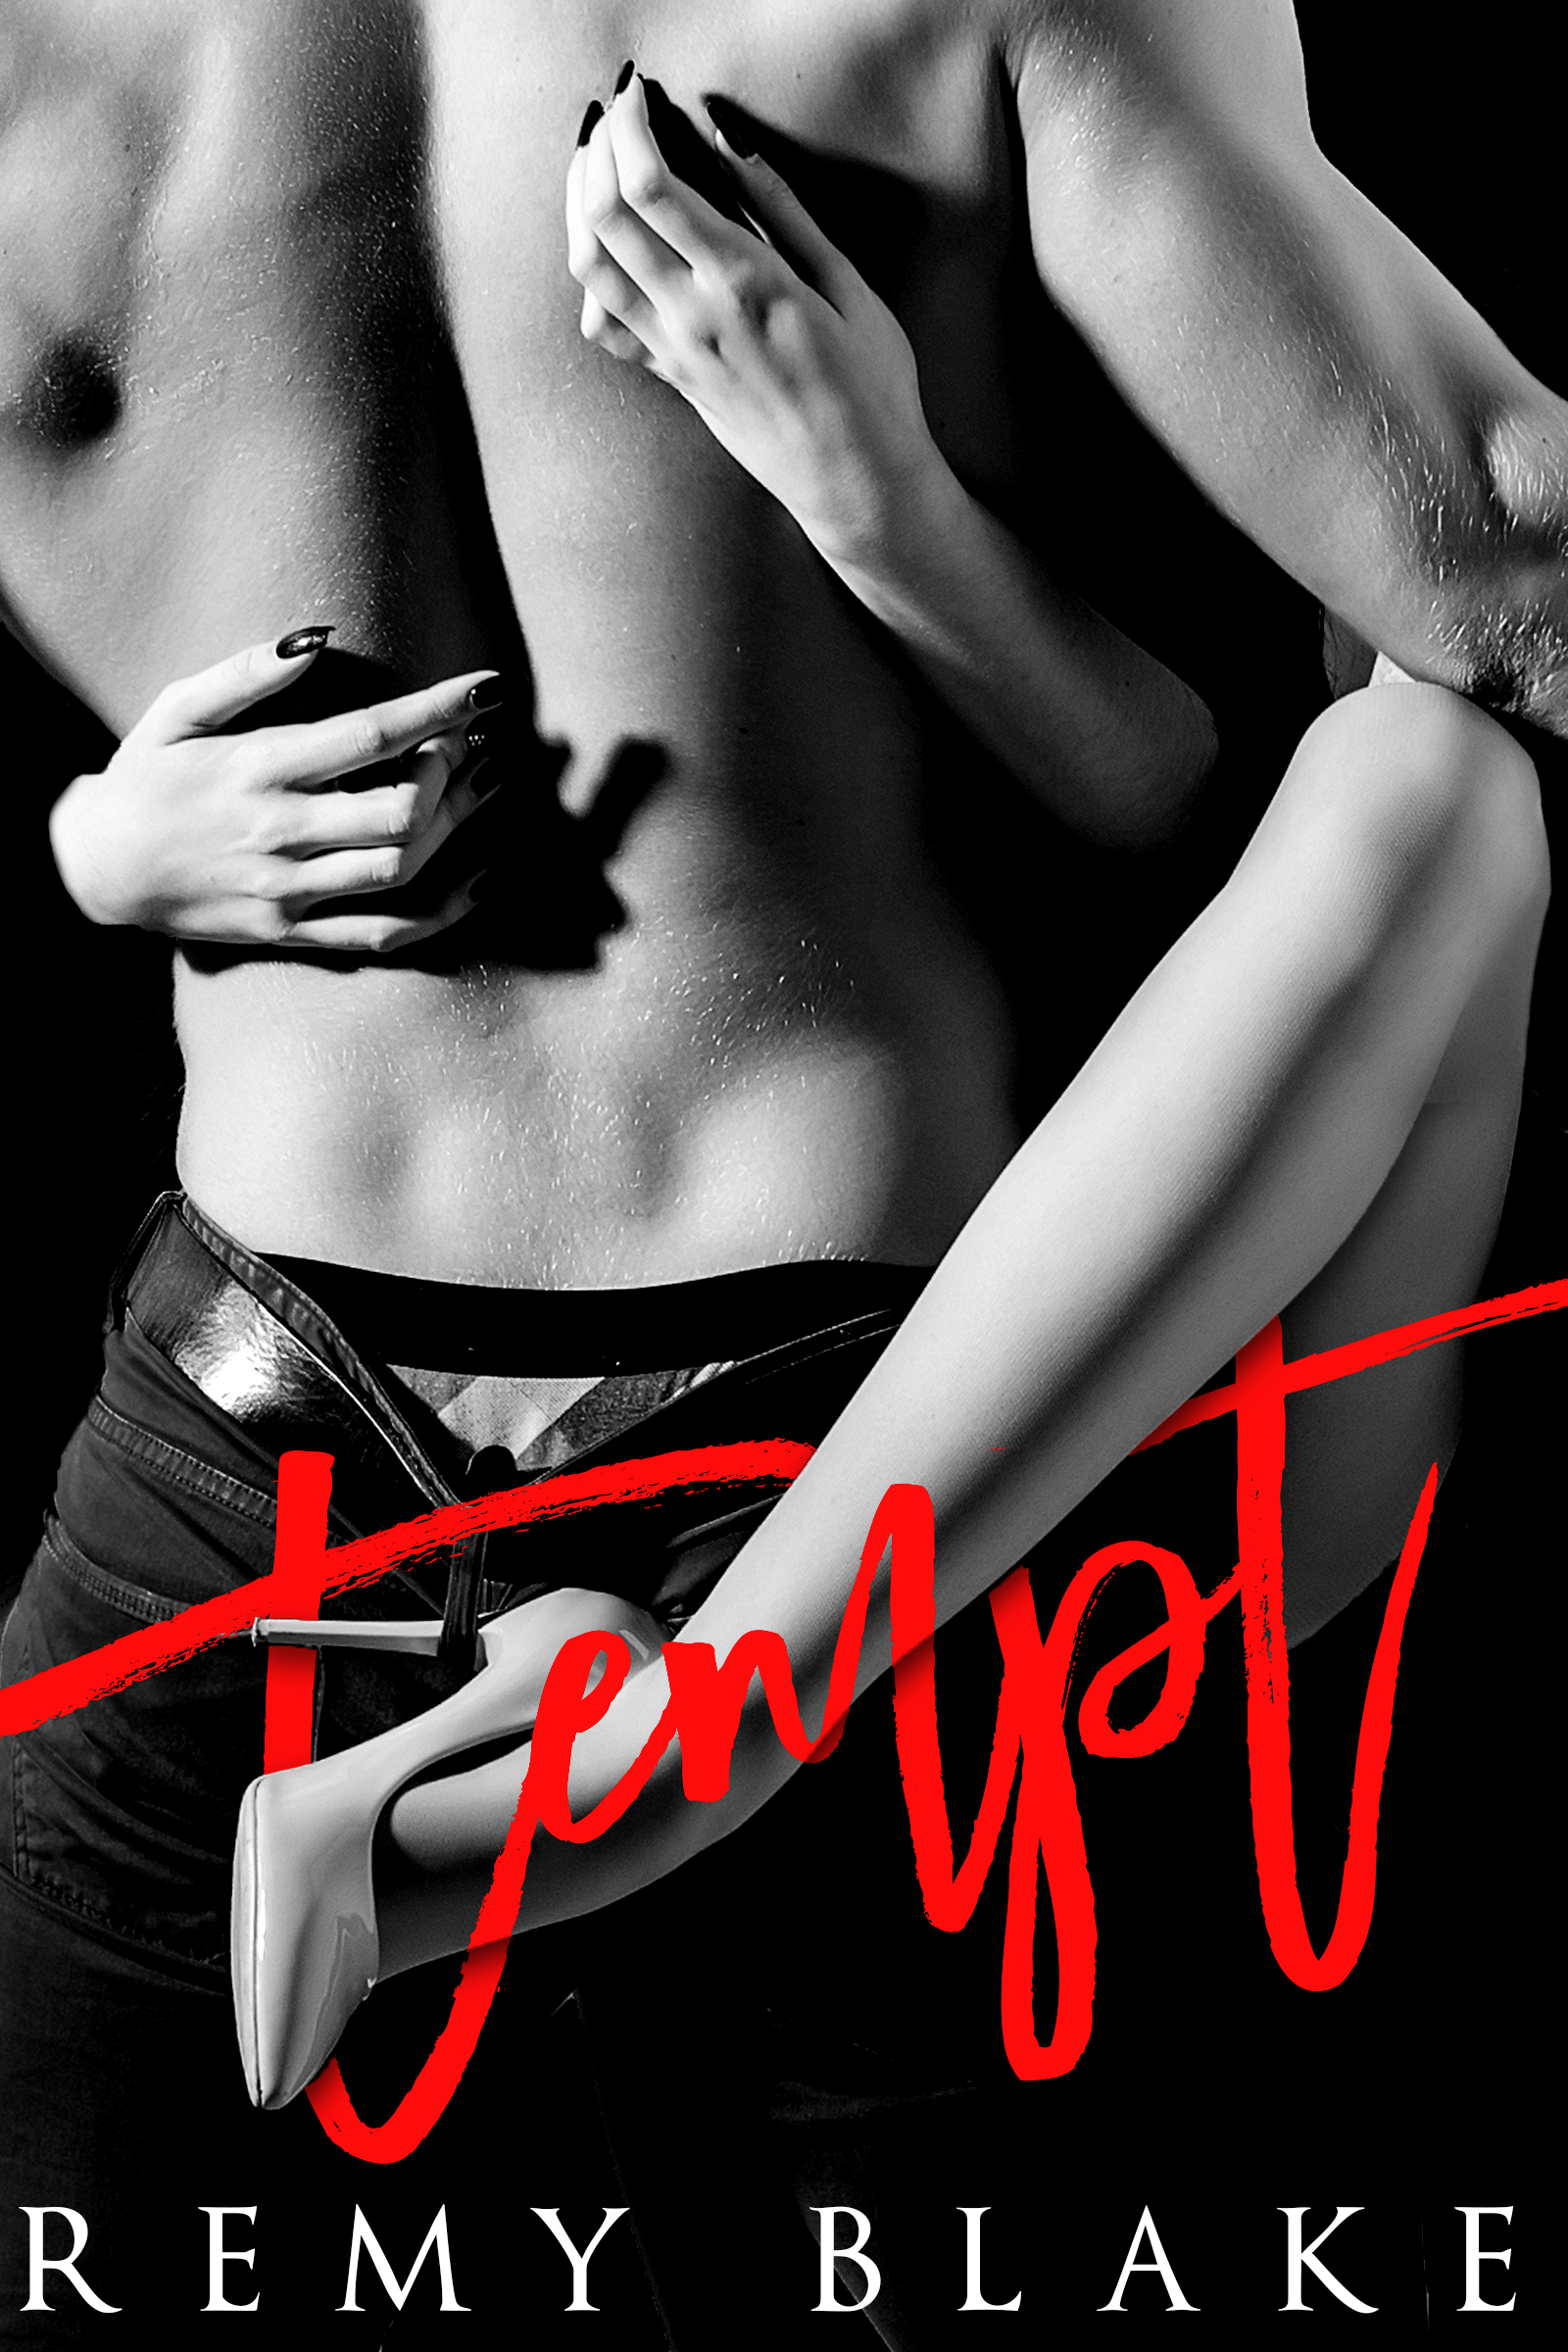 Tempt Remy Blake Ecover